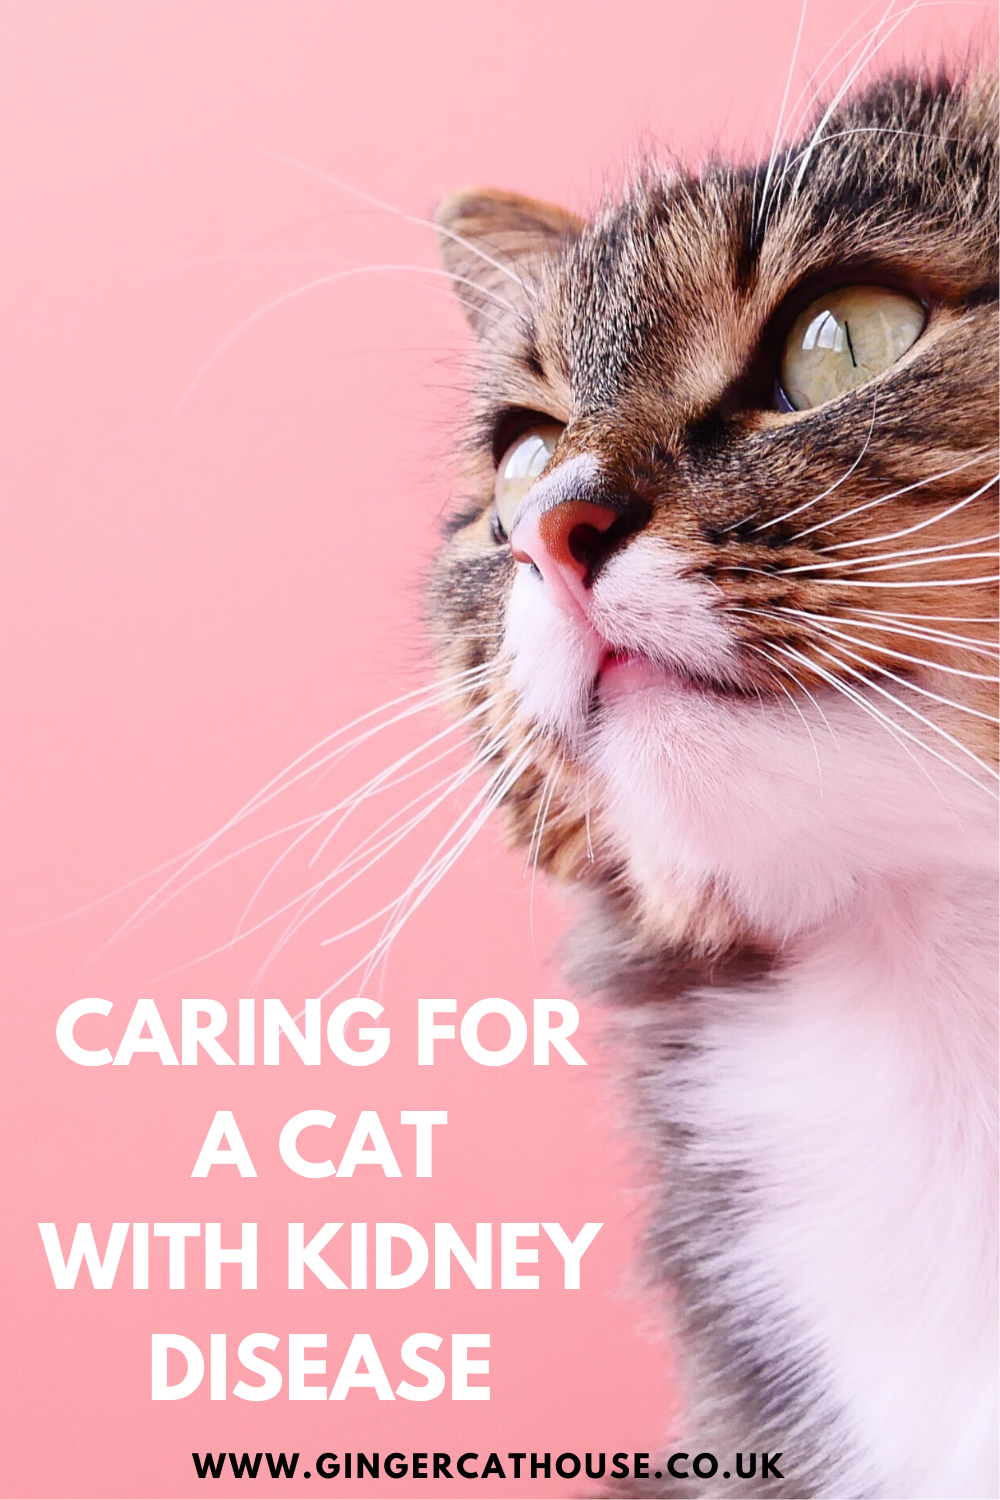 Caring For A Cat With Kidney Disease In 2020 Kidney Disease Chronic Kidney Disease Cat Kidney